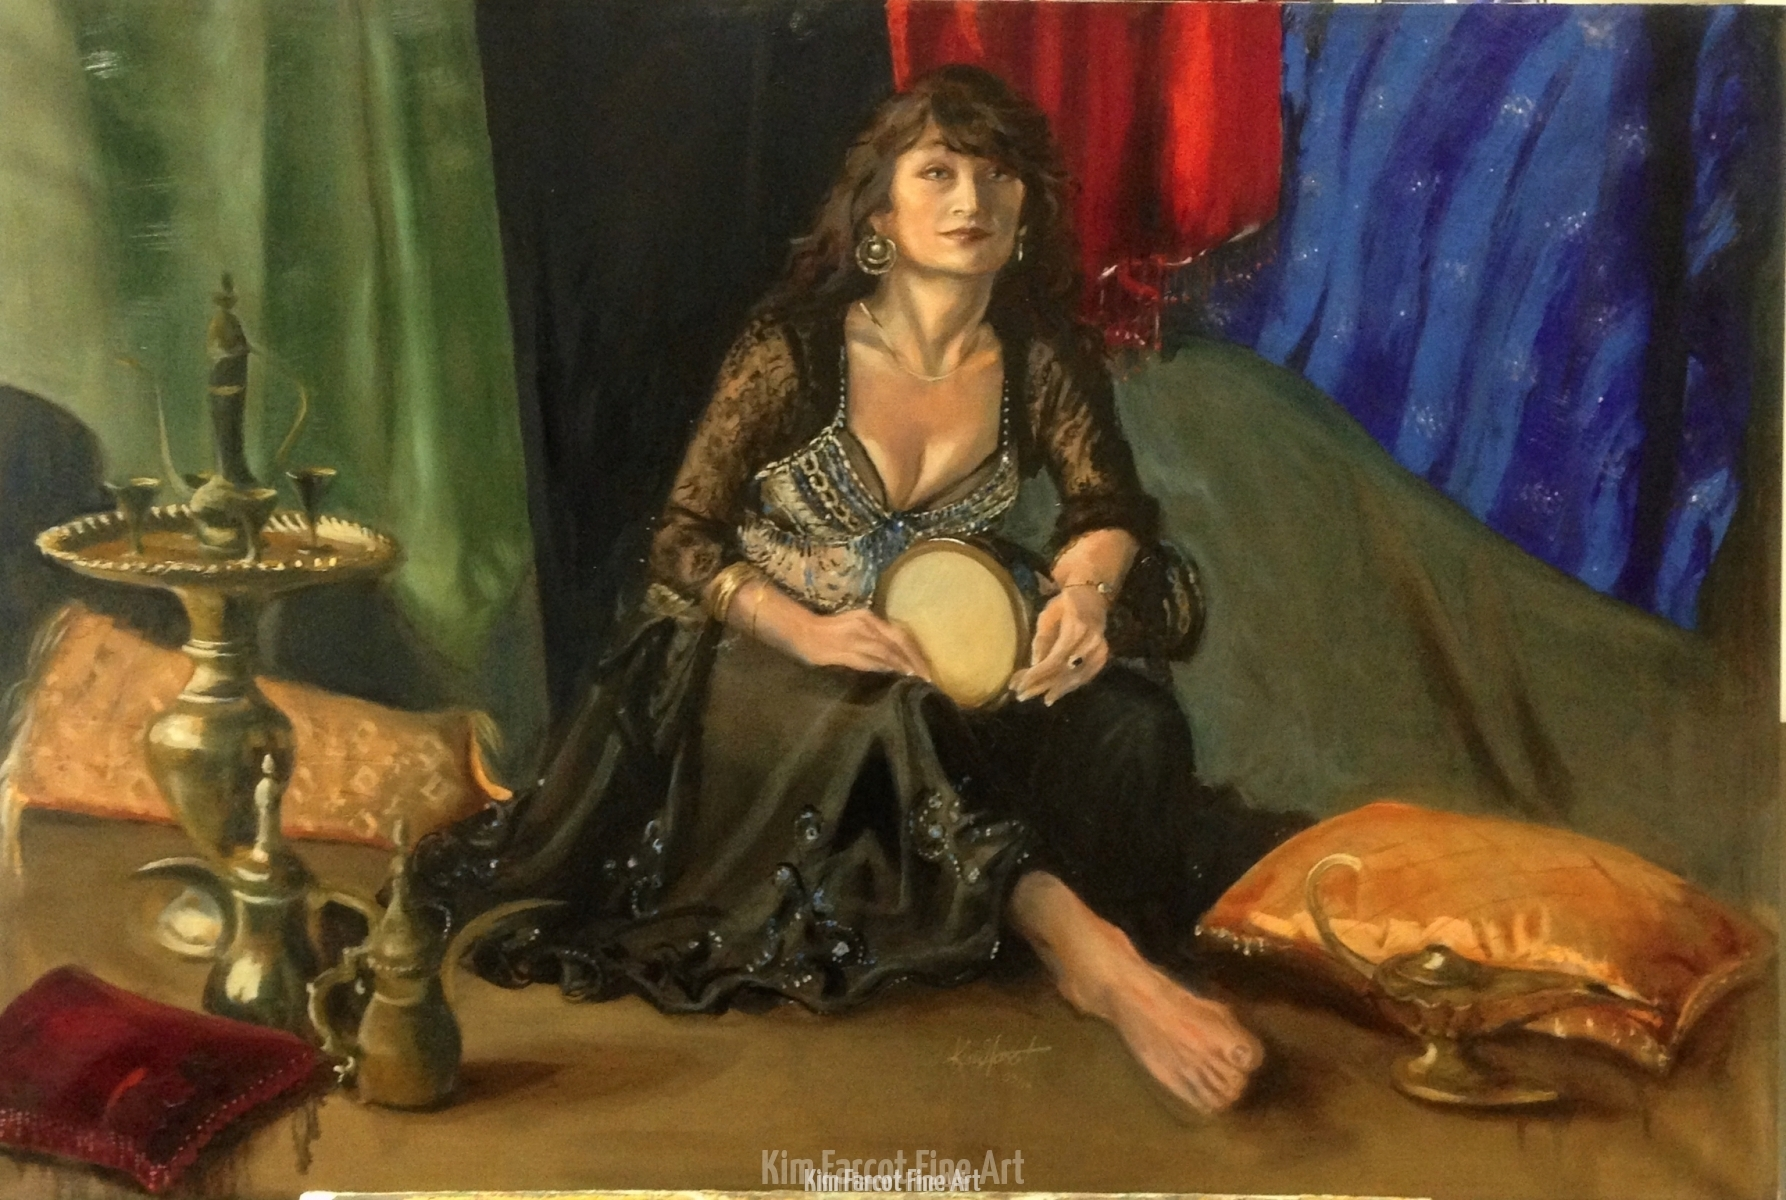 Carmen, private collection, Saudi Arabia